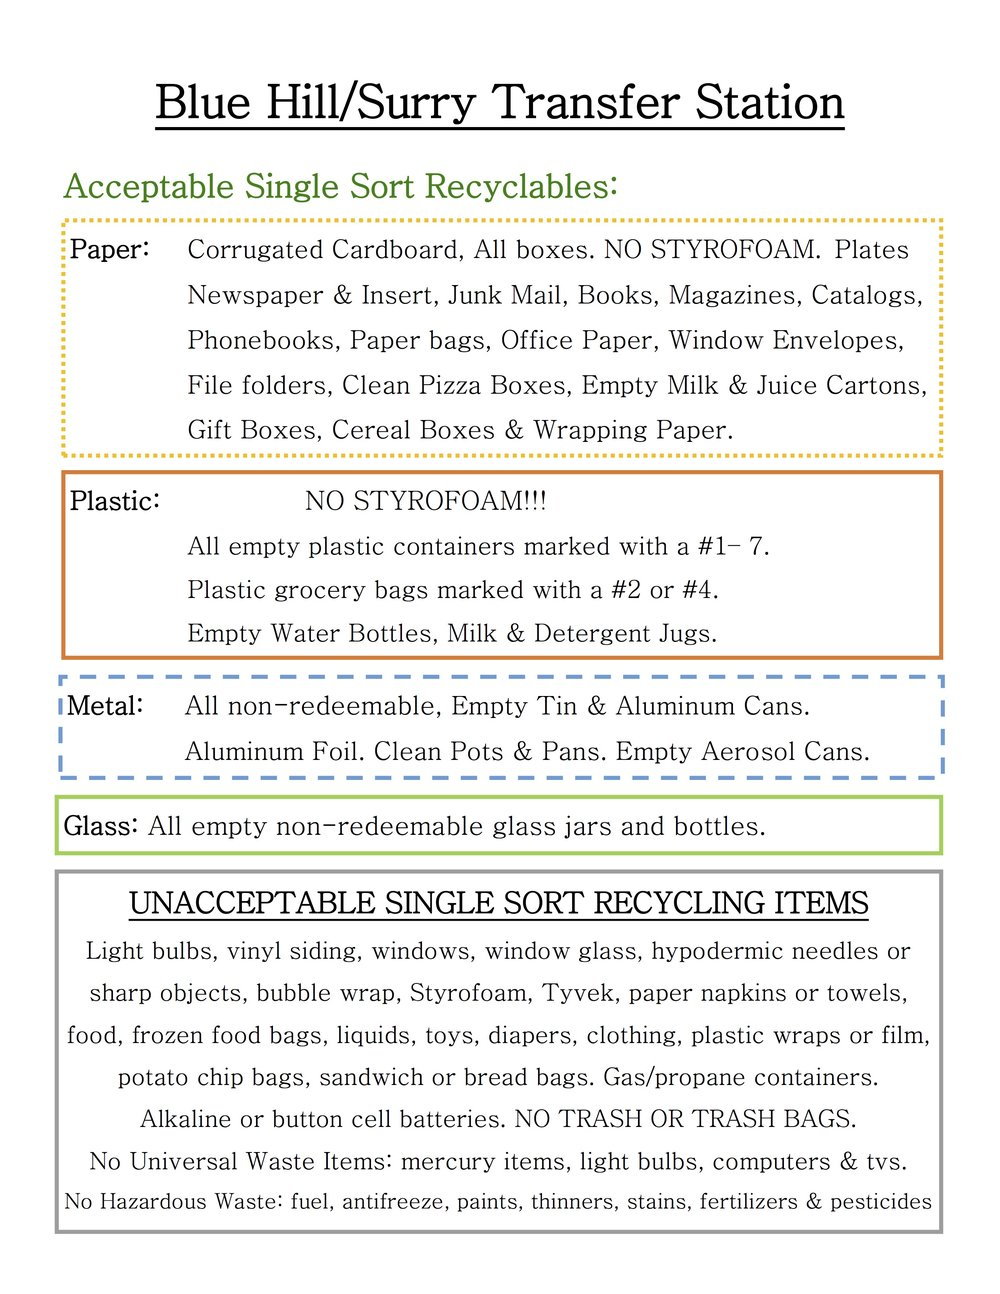 Transfer Station Recycling: Click to access flyer.